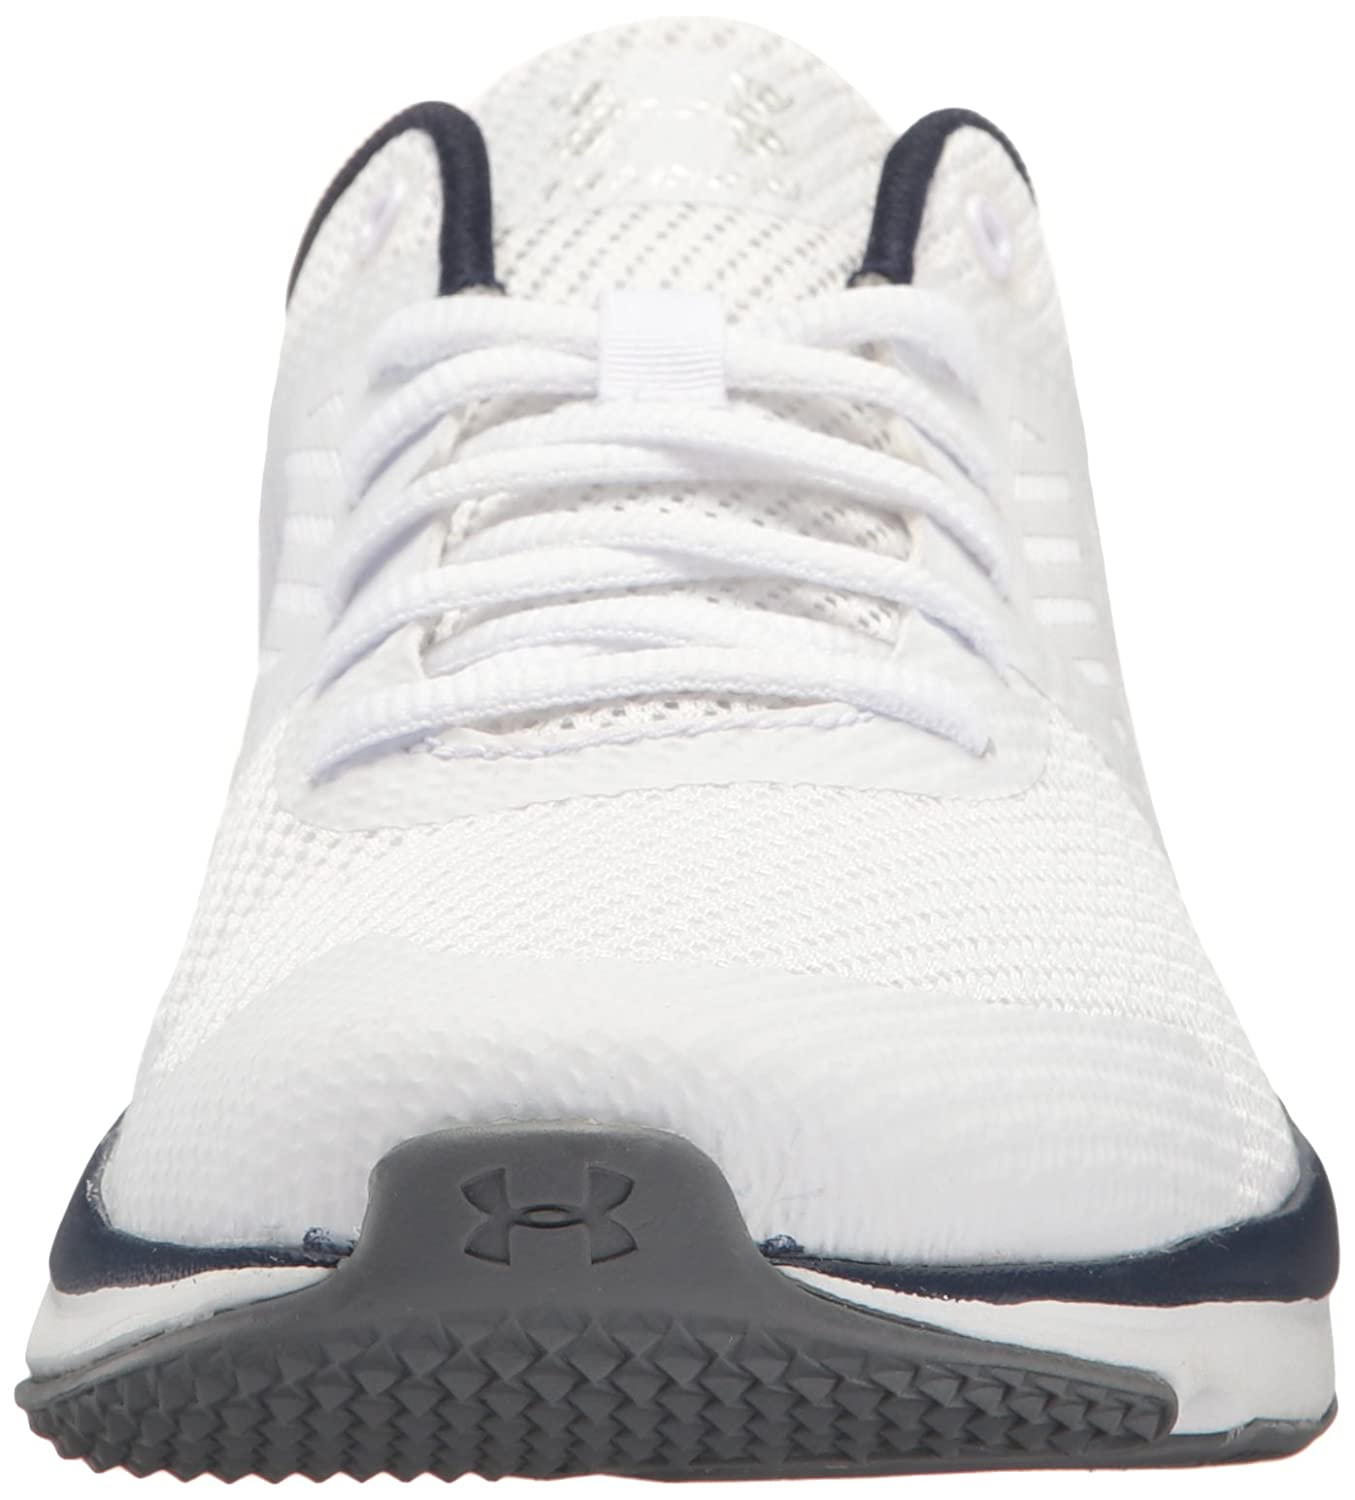 Under Armour Women's Micro B01GSOCJNC G Press Cross Trainer B01GSOCJNC Micro 7.5 M US|White (100)/Midnight Navy 3094fe